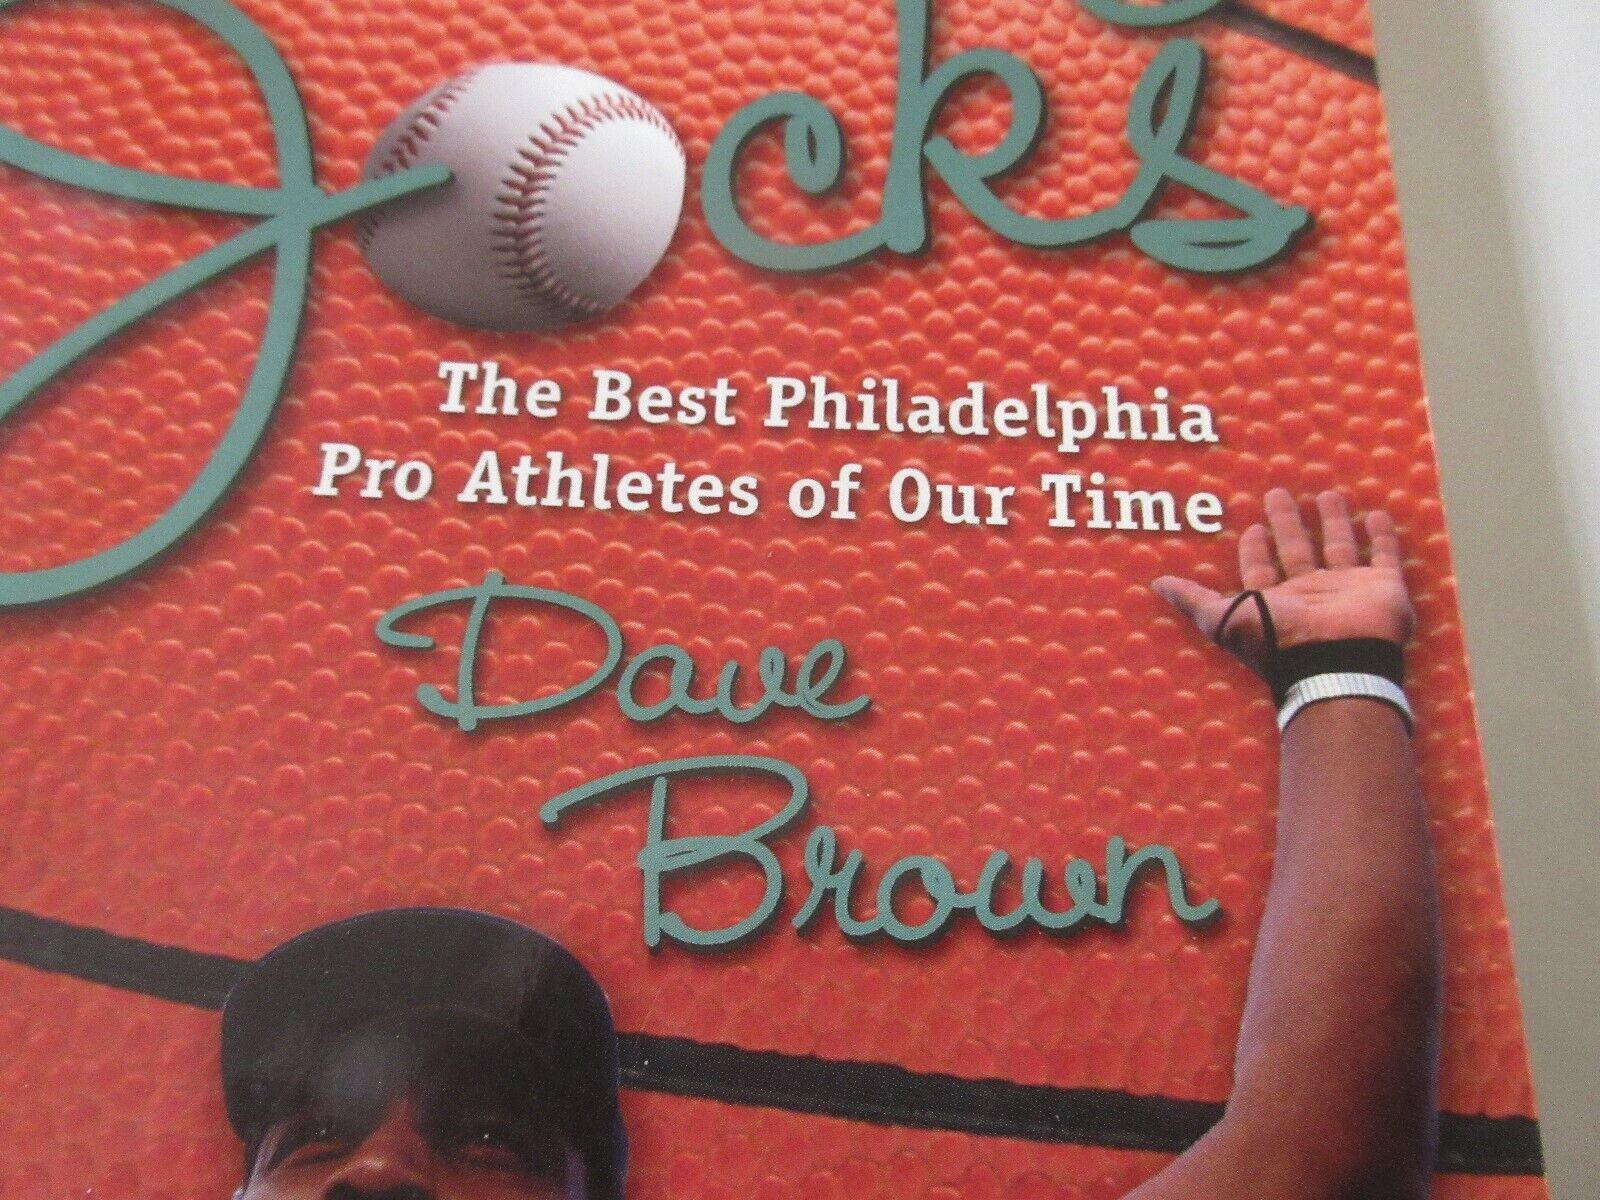 Philly Jocks by Dave Brown , Copyright 2007 , The Best